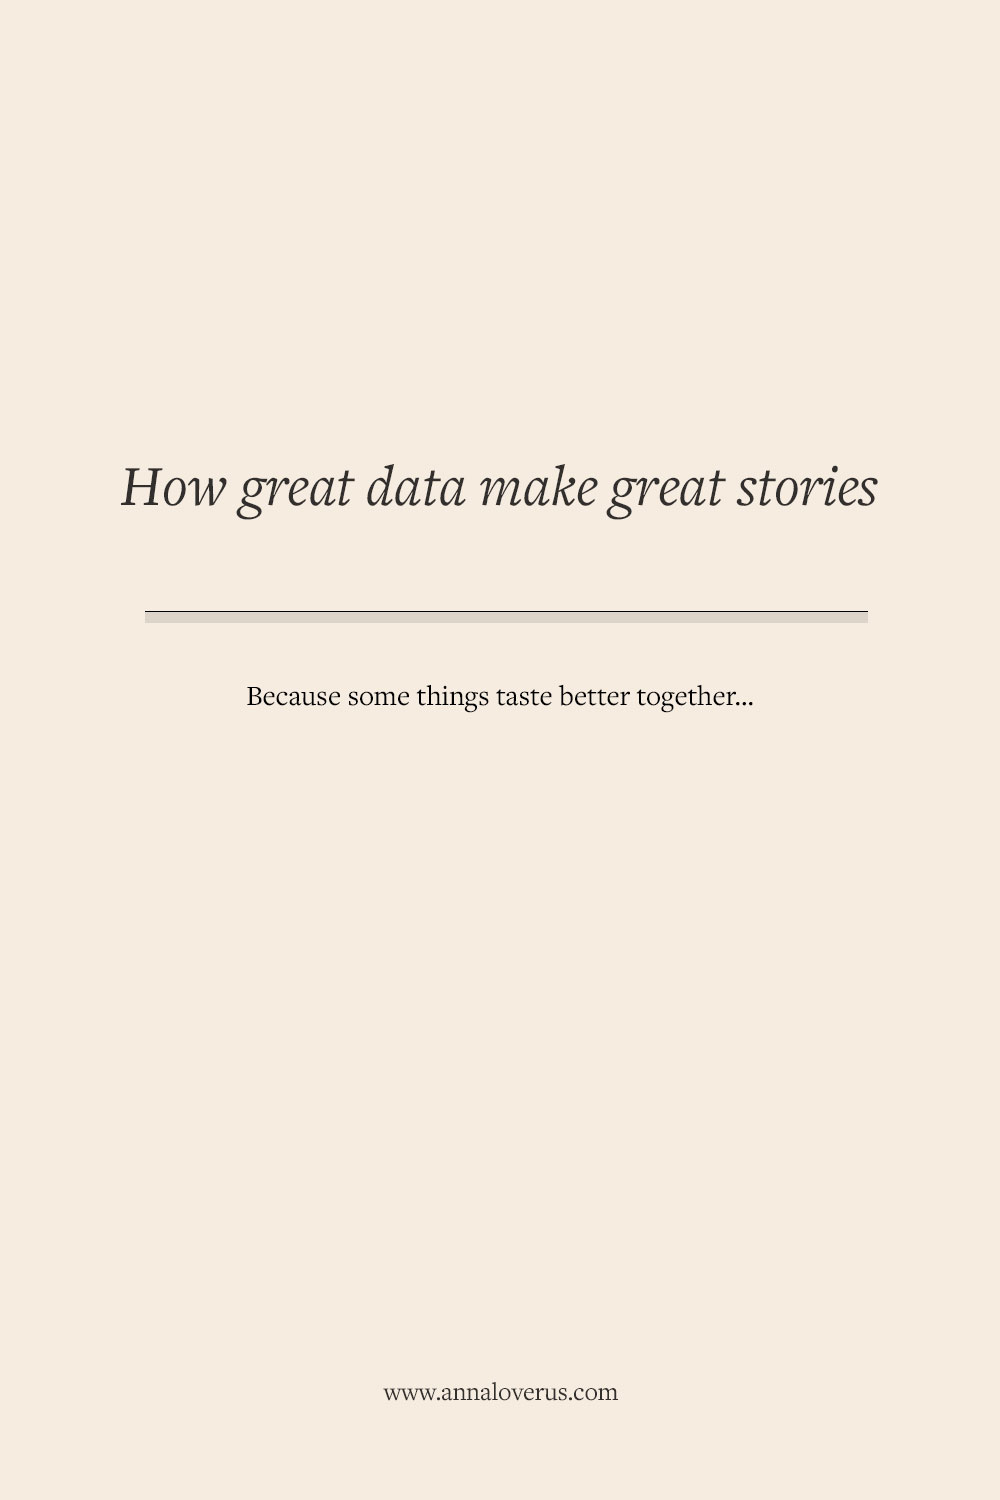 Great stories need data, and most data need storytelling to get comprehensible by a larger mass. They're a match made in heaven, but how does it work?